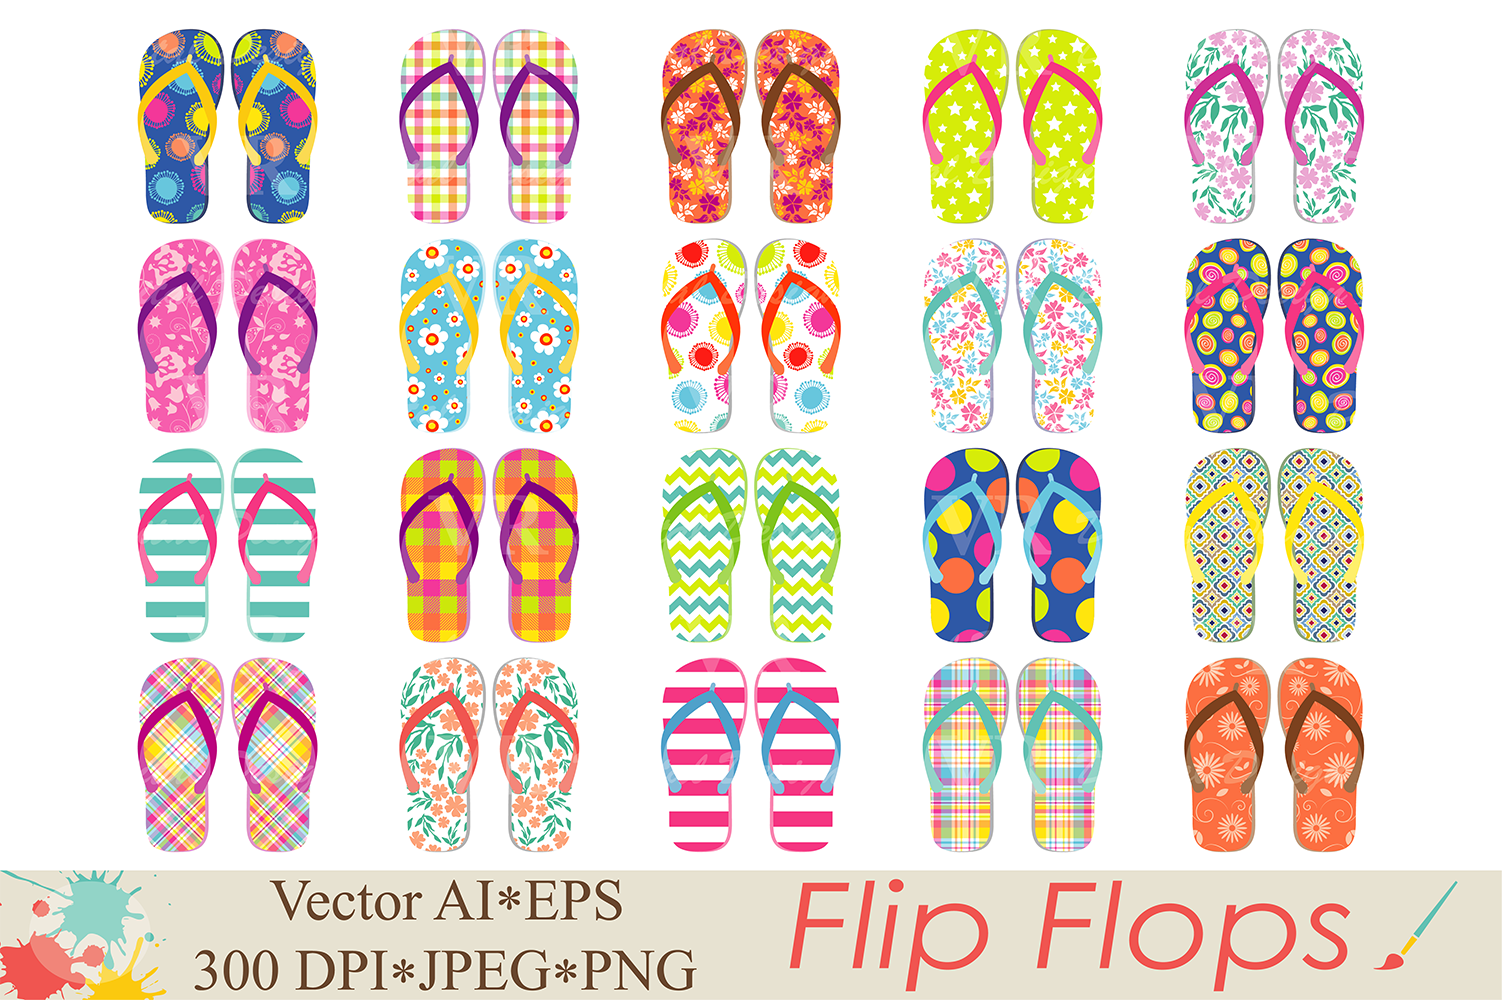 Flip Flops Clipart / Beach Shoes Graphics / Summer Vector Illustration Graphic Illustrations By VR Digital Design - Image 1